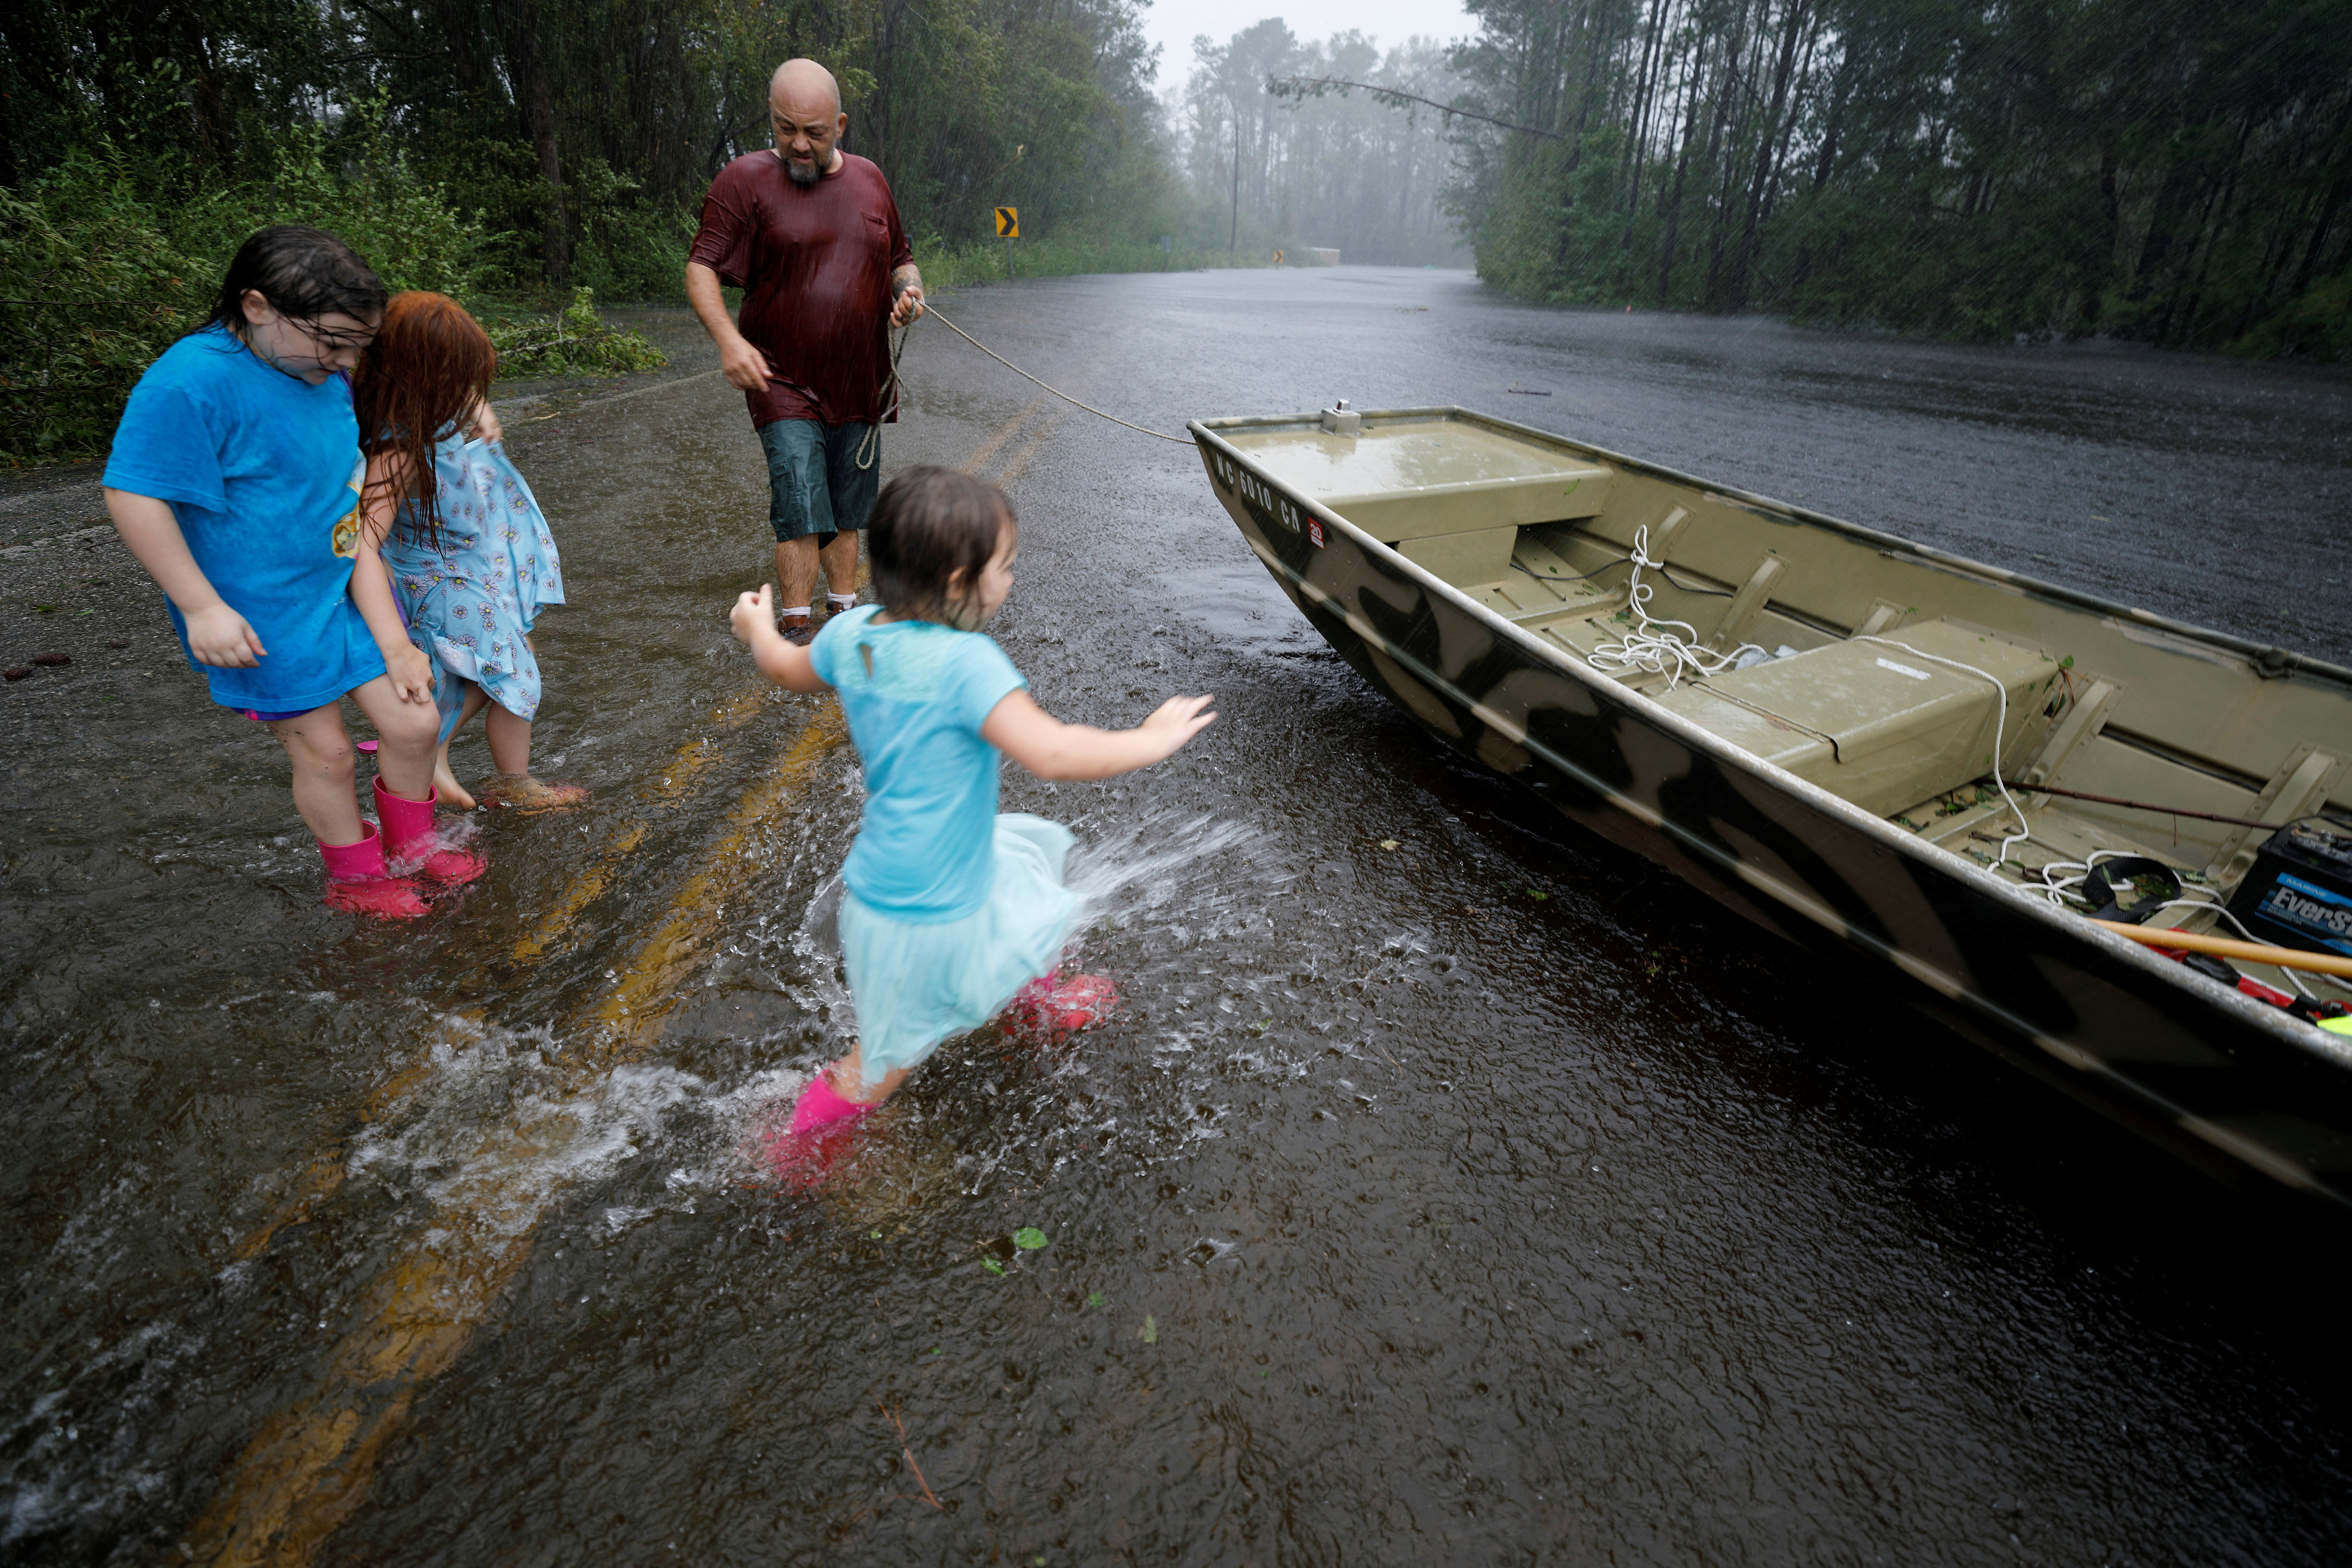 Iva Williamson runs through flood waters submerging a street to a boat as others wait to board during their rescue from rising flood waters in the aftermath of Hurricane Florence in Leland, North Carolina